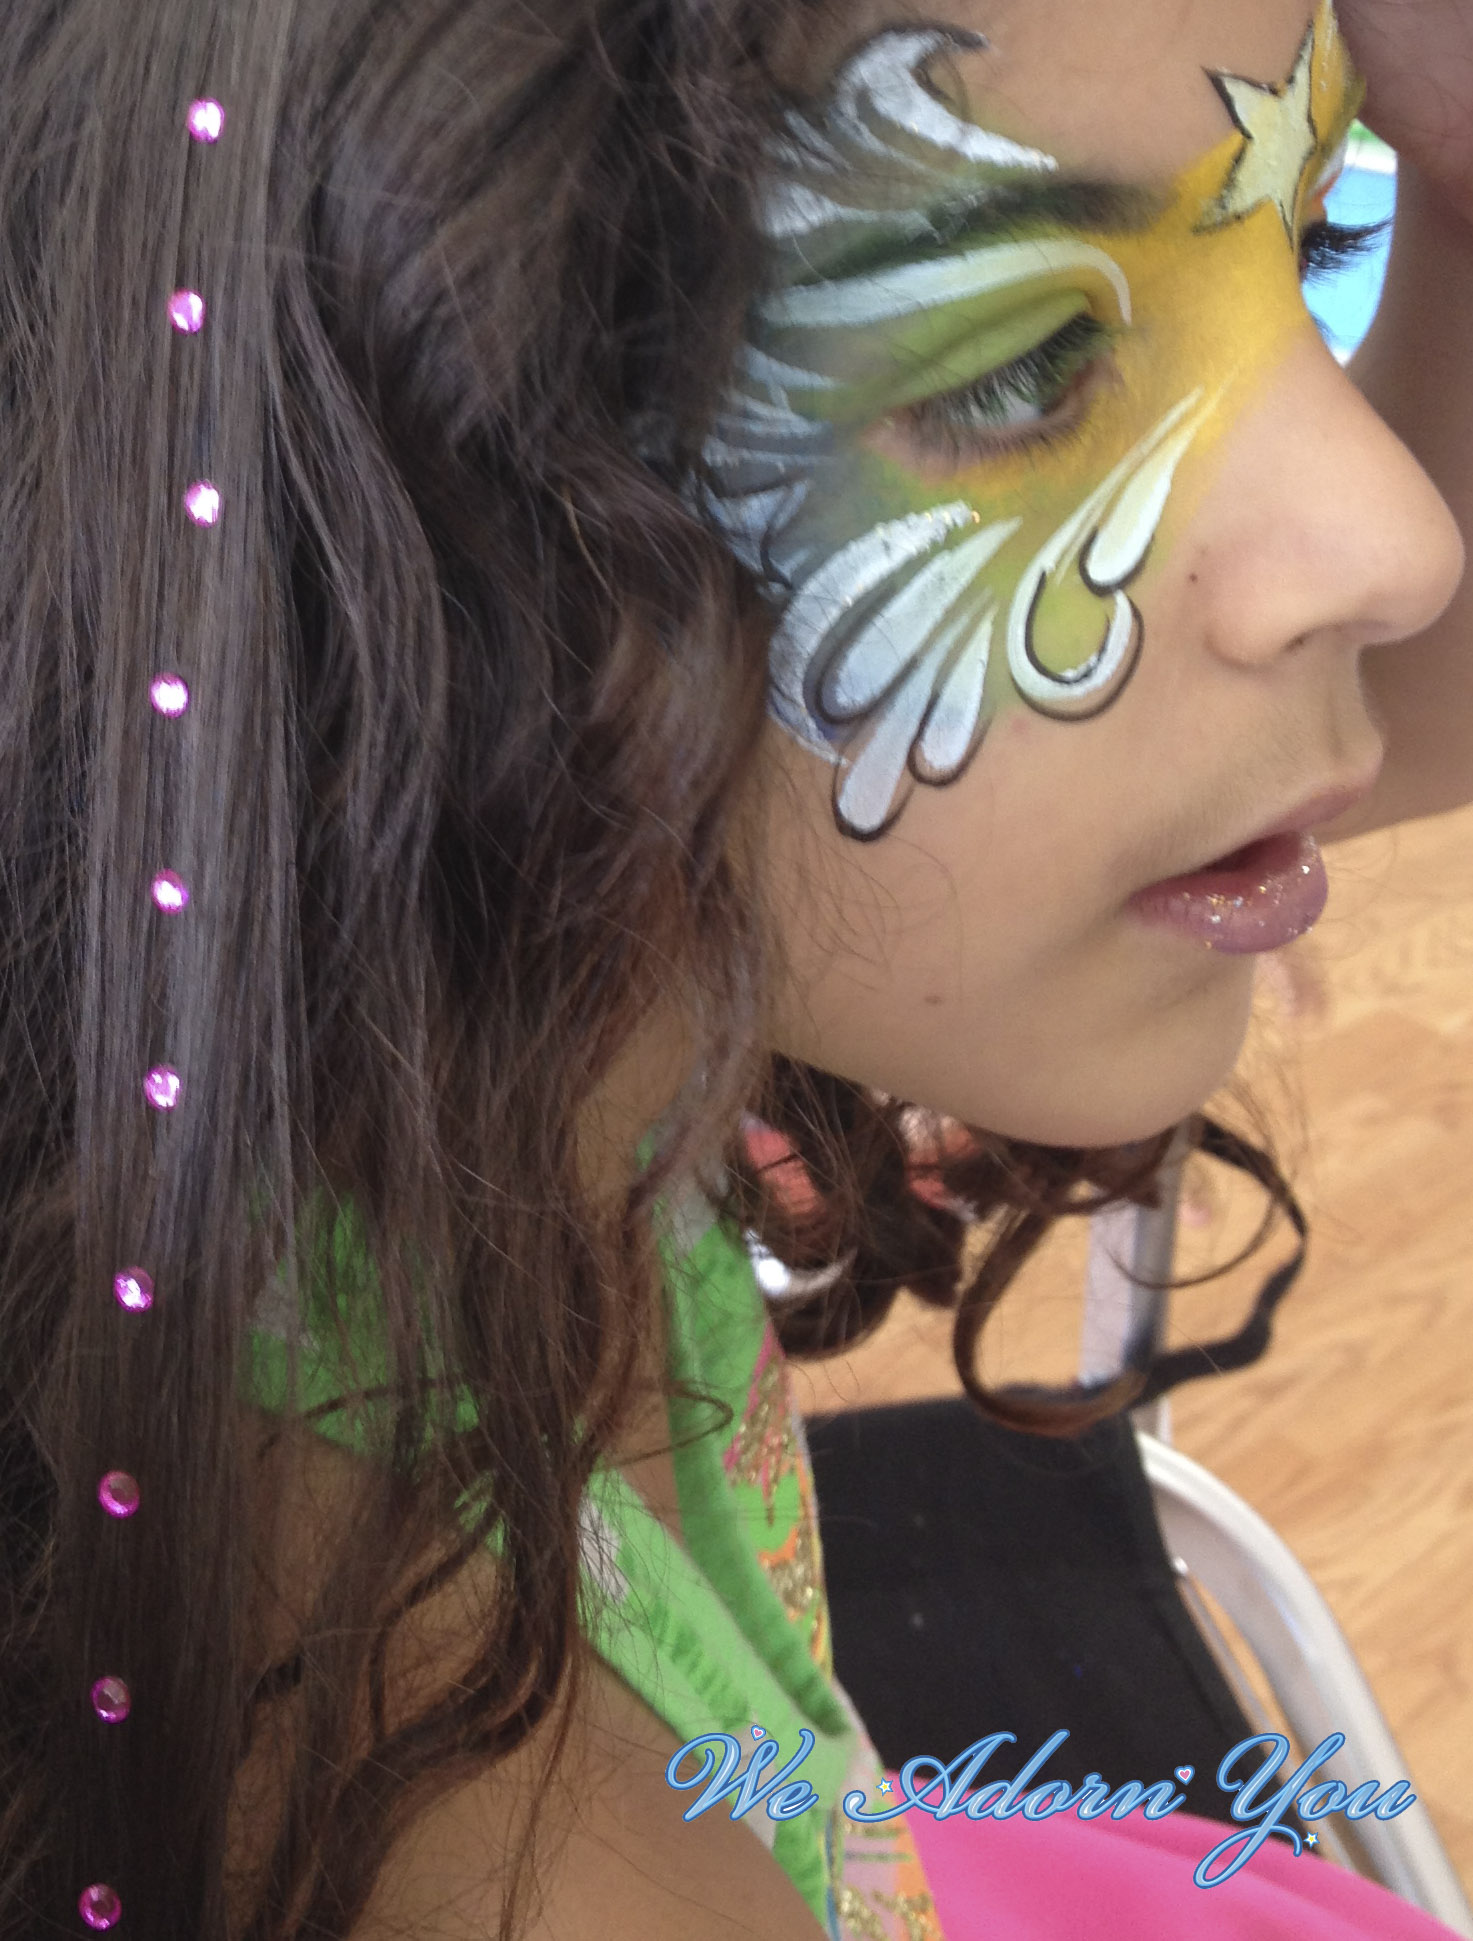 Hair Crystal and Face Painting Girl- We Adorn You.jpg